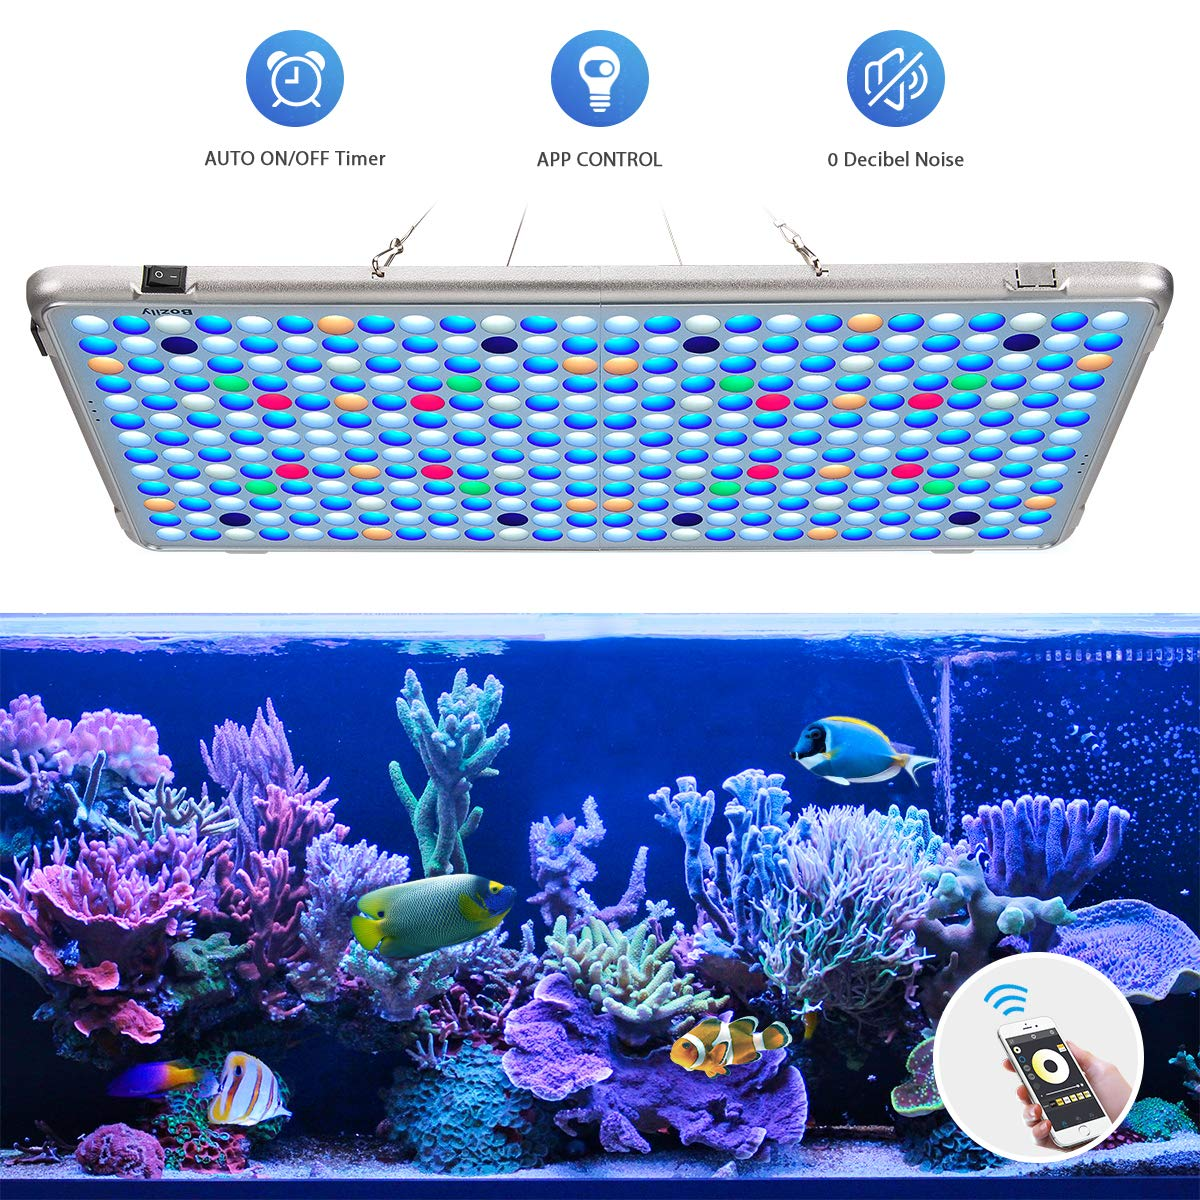 Bozily Aquarium Light 300W, APP Control LED Coral Light with Automatic on/Off Timer and Dimming Function, Full Spectrum Reef Lighting Light for Coral Reef Grow Fish Tank